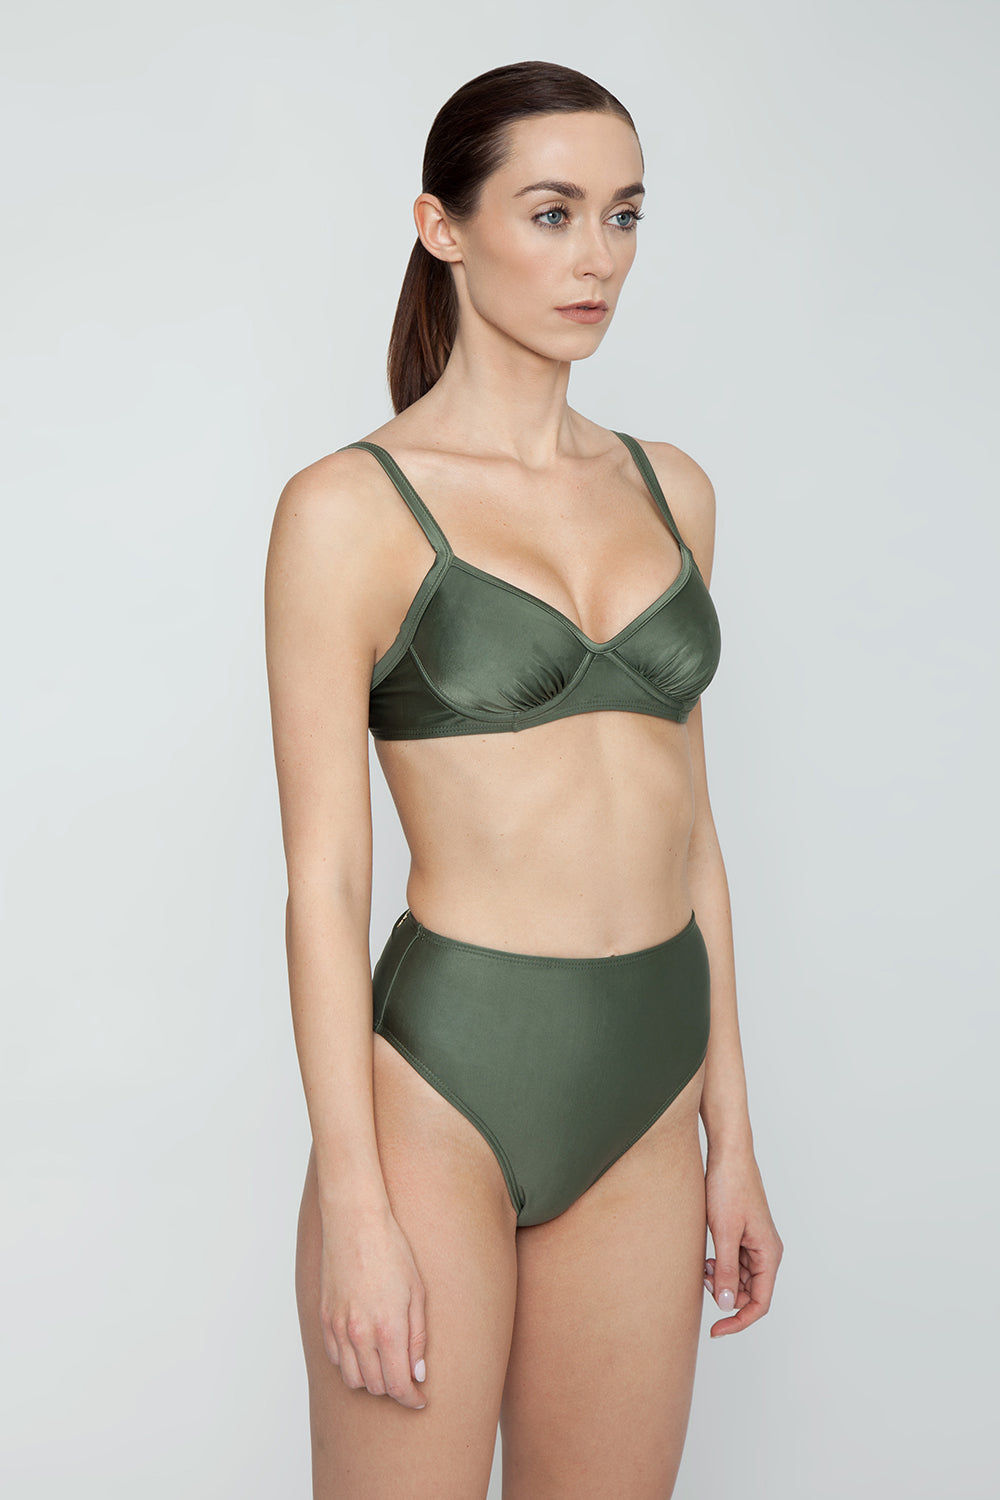 AGUA DE COCO Underwire Fixed Bikini Top - Olive Green Bikini Top | Olive Green| Agua De Coco Underwire Fixed Bikini Top - Olive Green Olive green bikini top Underwire detail Adjustable shoulder straps  Back tie closure Side View